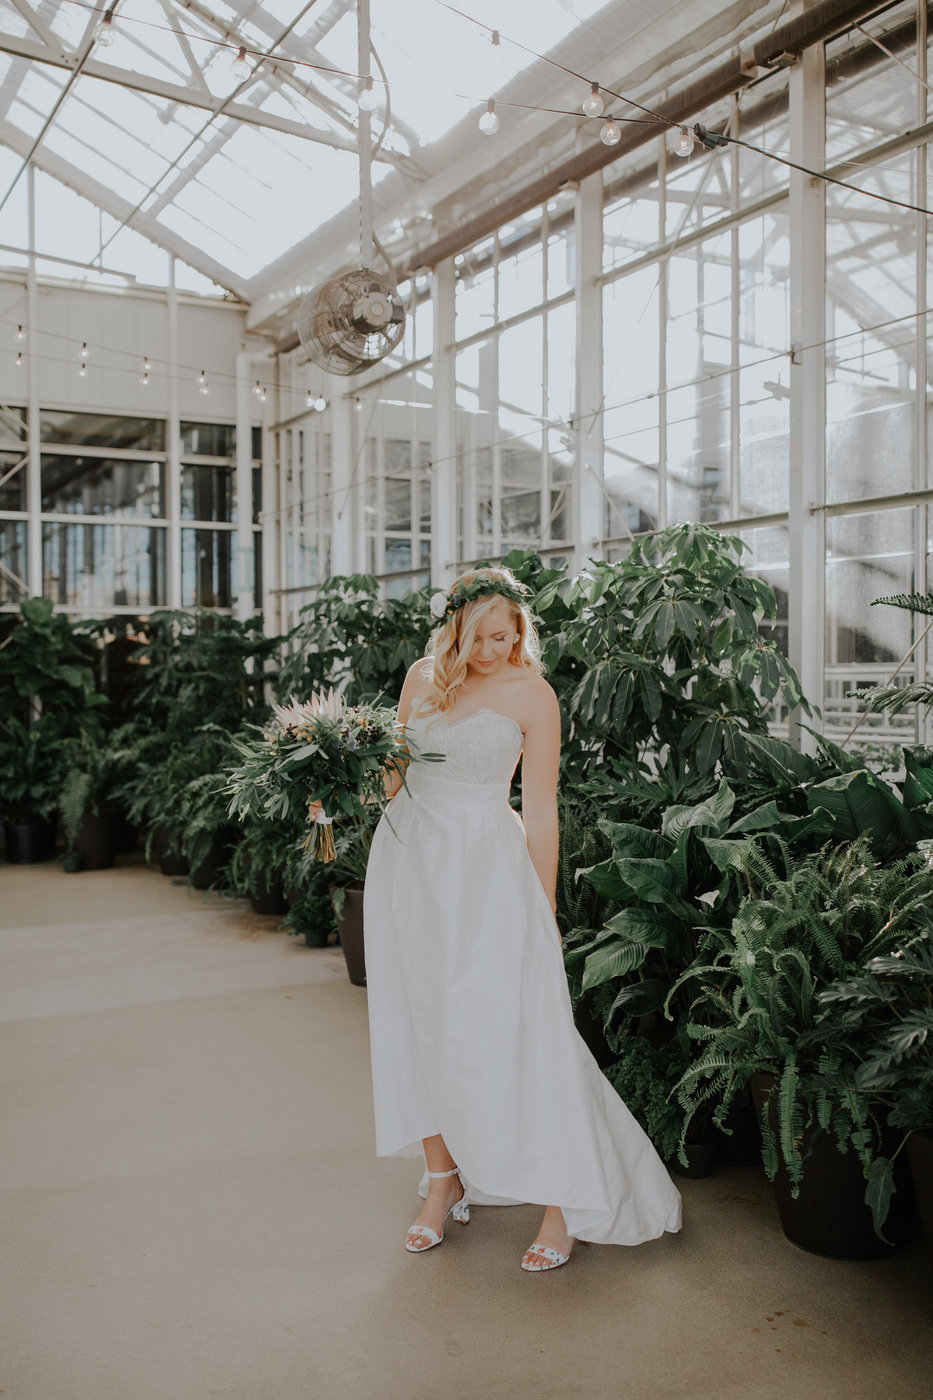 West Michigan Bride of the Month says